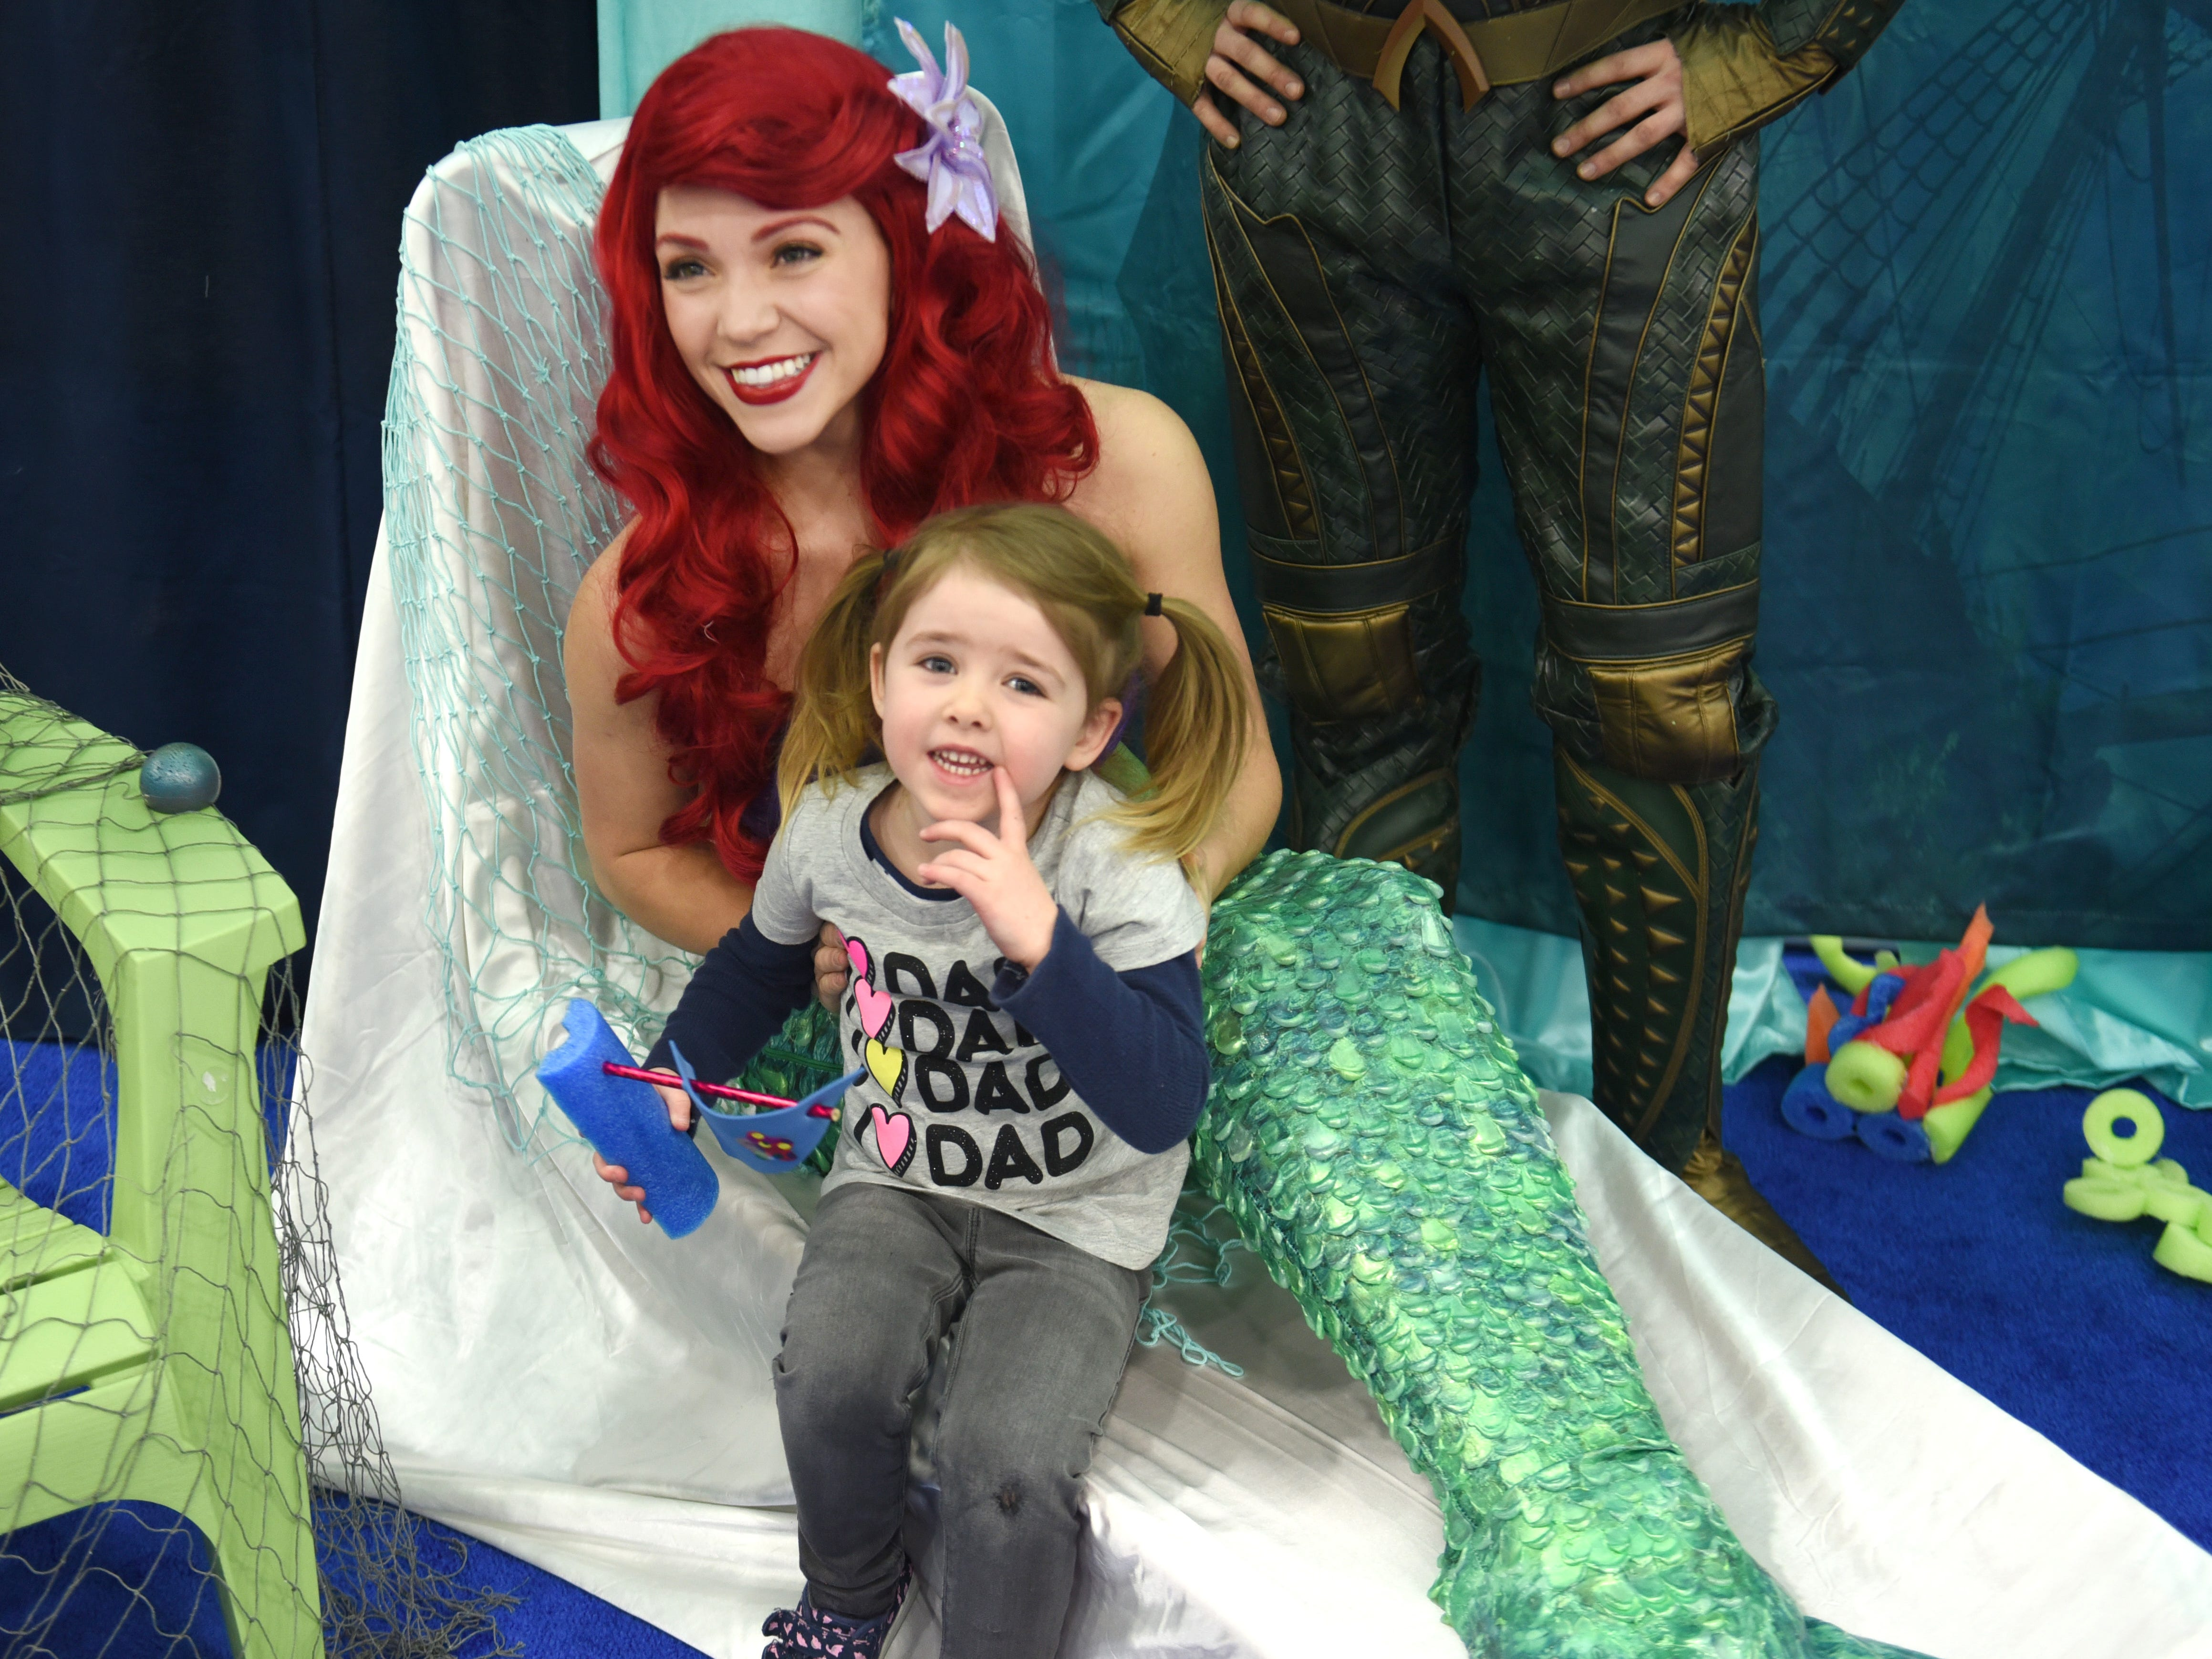 Sara Kmiec, of The Enchanted Princess Party, Madison Heights, wears a mermaid costume and takes a photograph with Vivian Borck at the Detroit Boat Show at Cobo Center on Saturday, February 16, 2018.